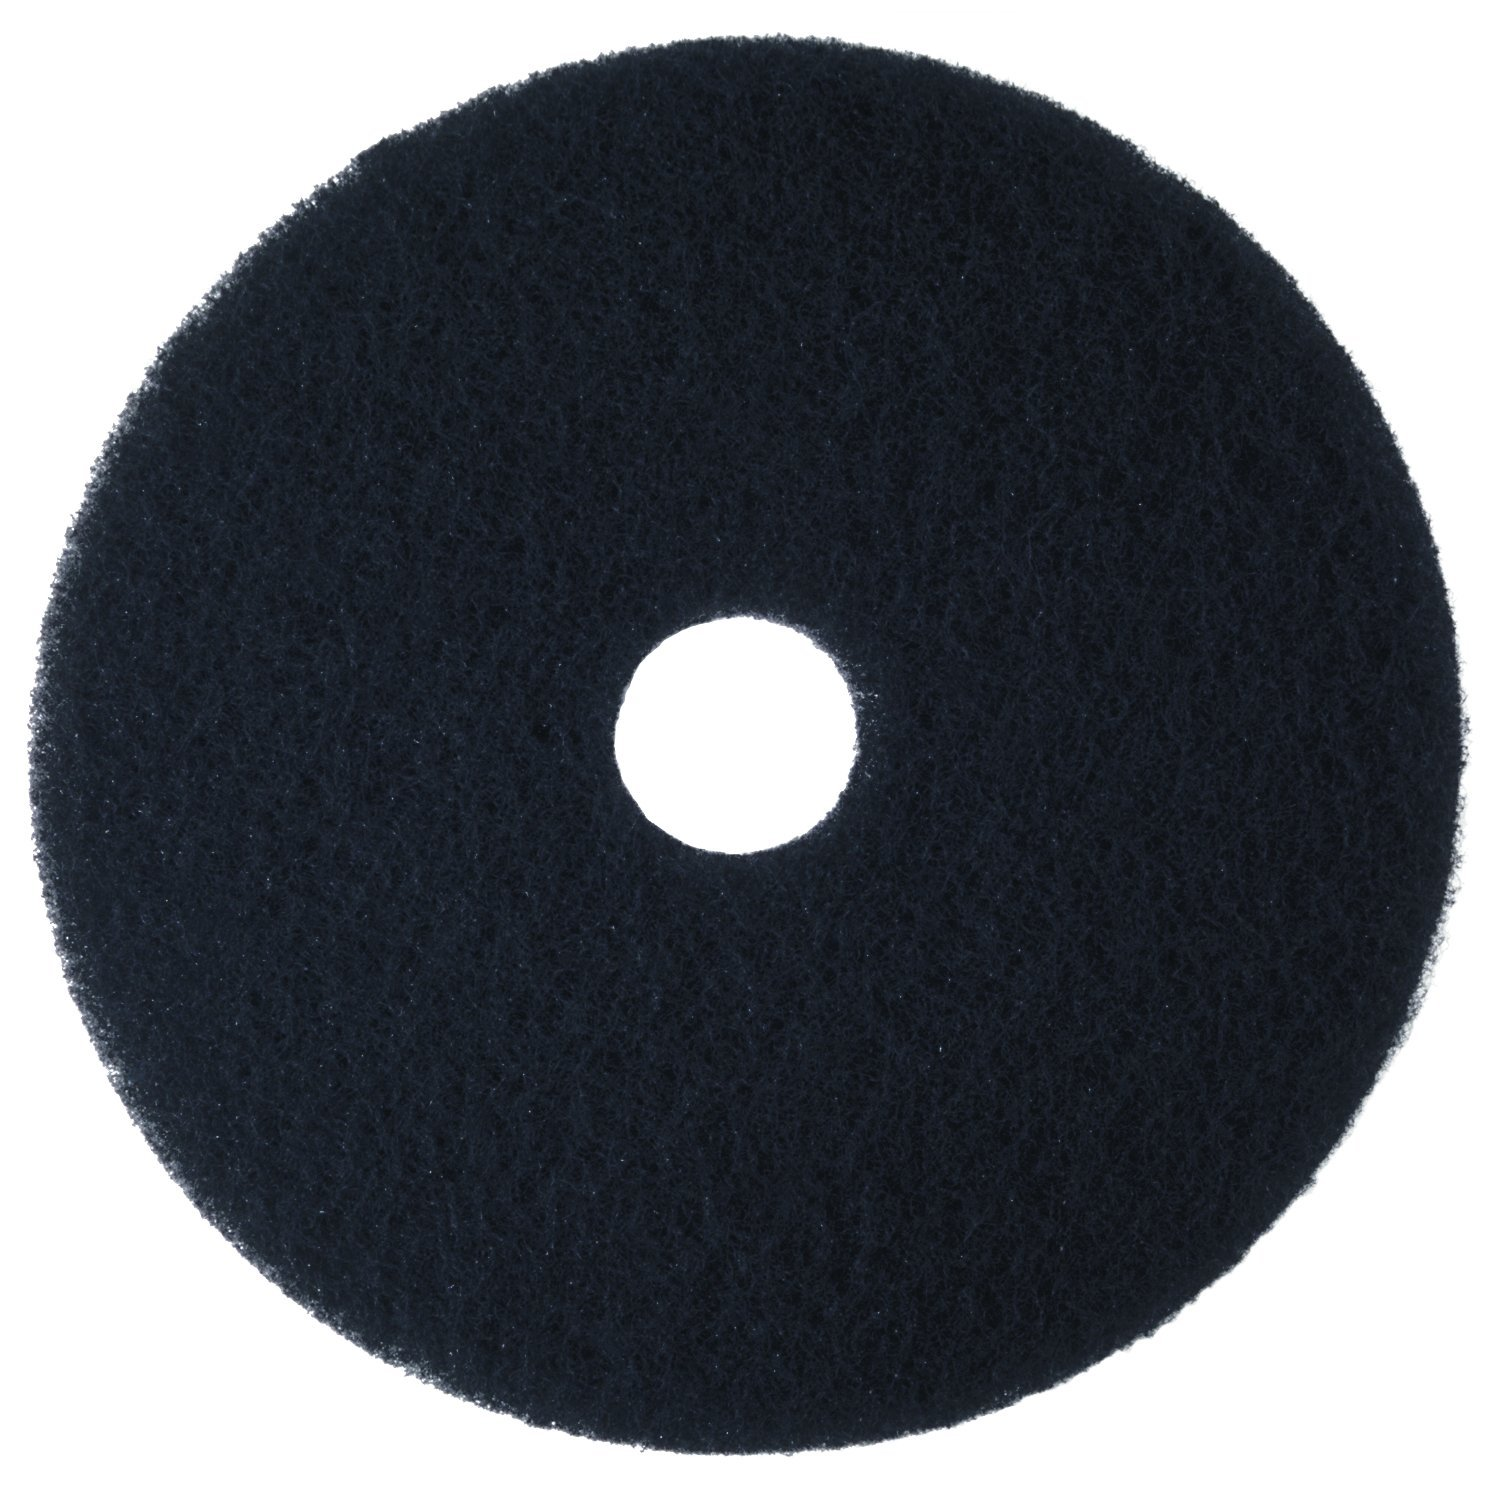 "Case of 5 3M High Productivity Black Pad 7300 20/"" Floor Care Pad,"